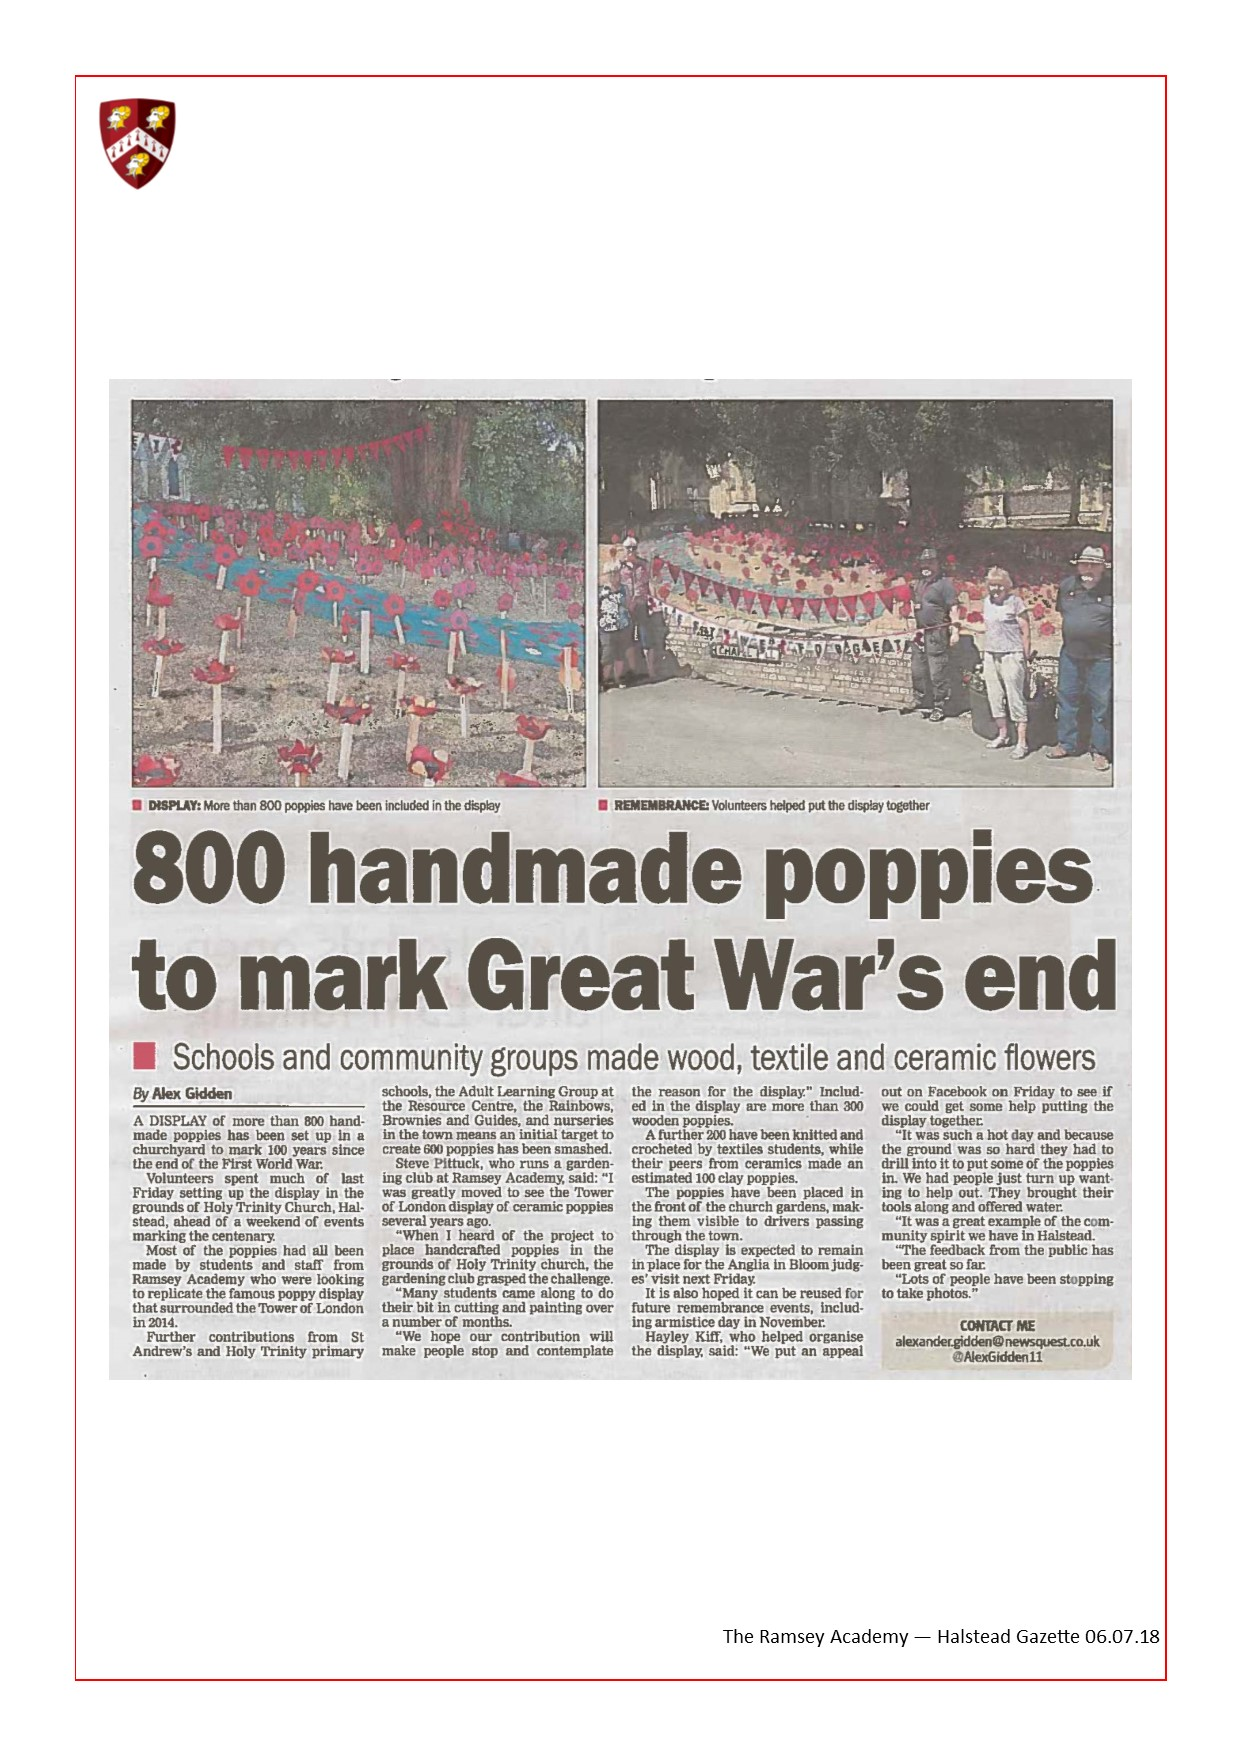 800 Handmade Poppies To Mark Great War's End 06.07.18